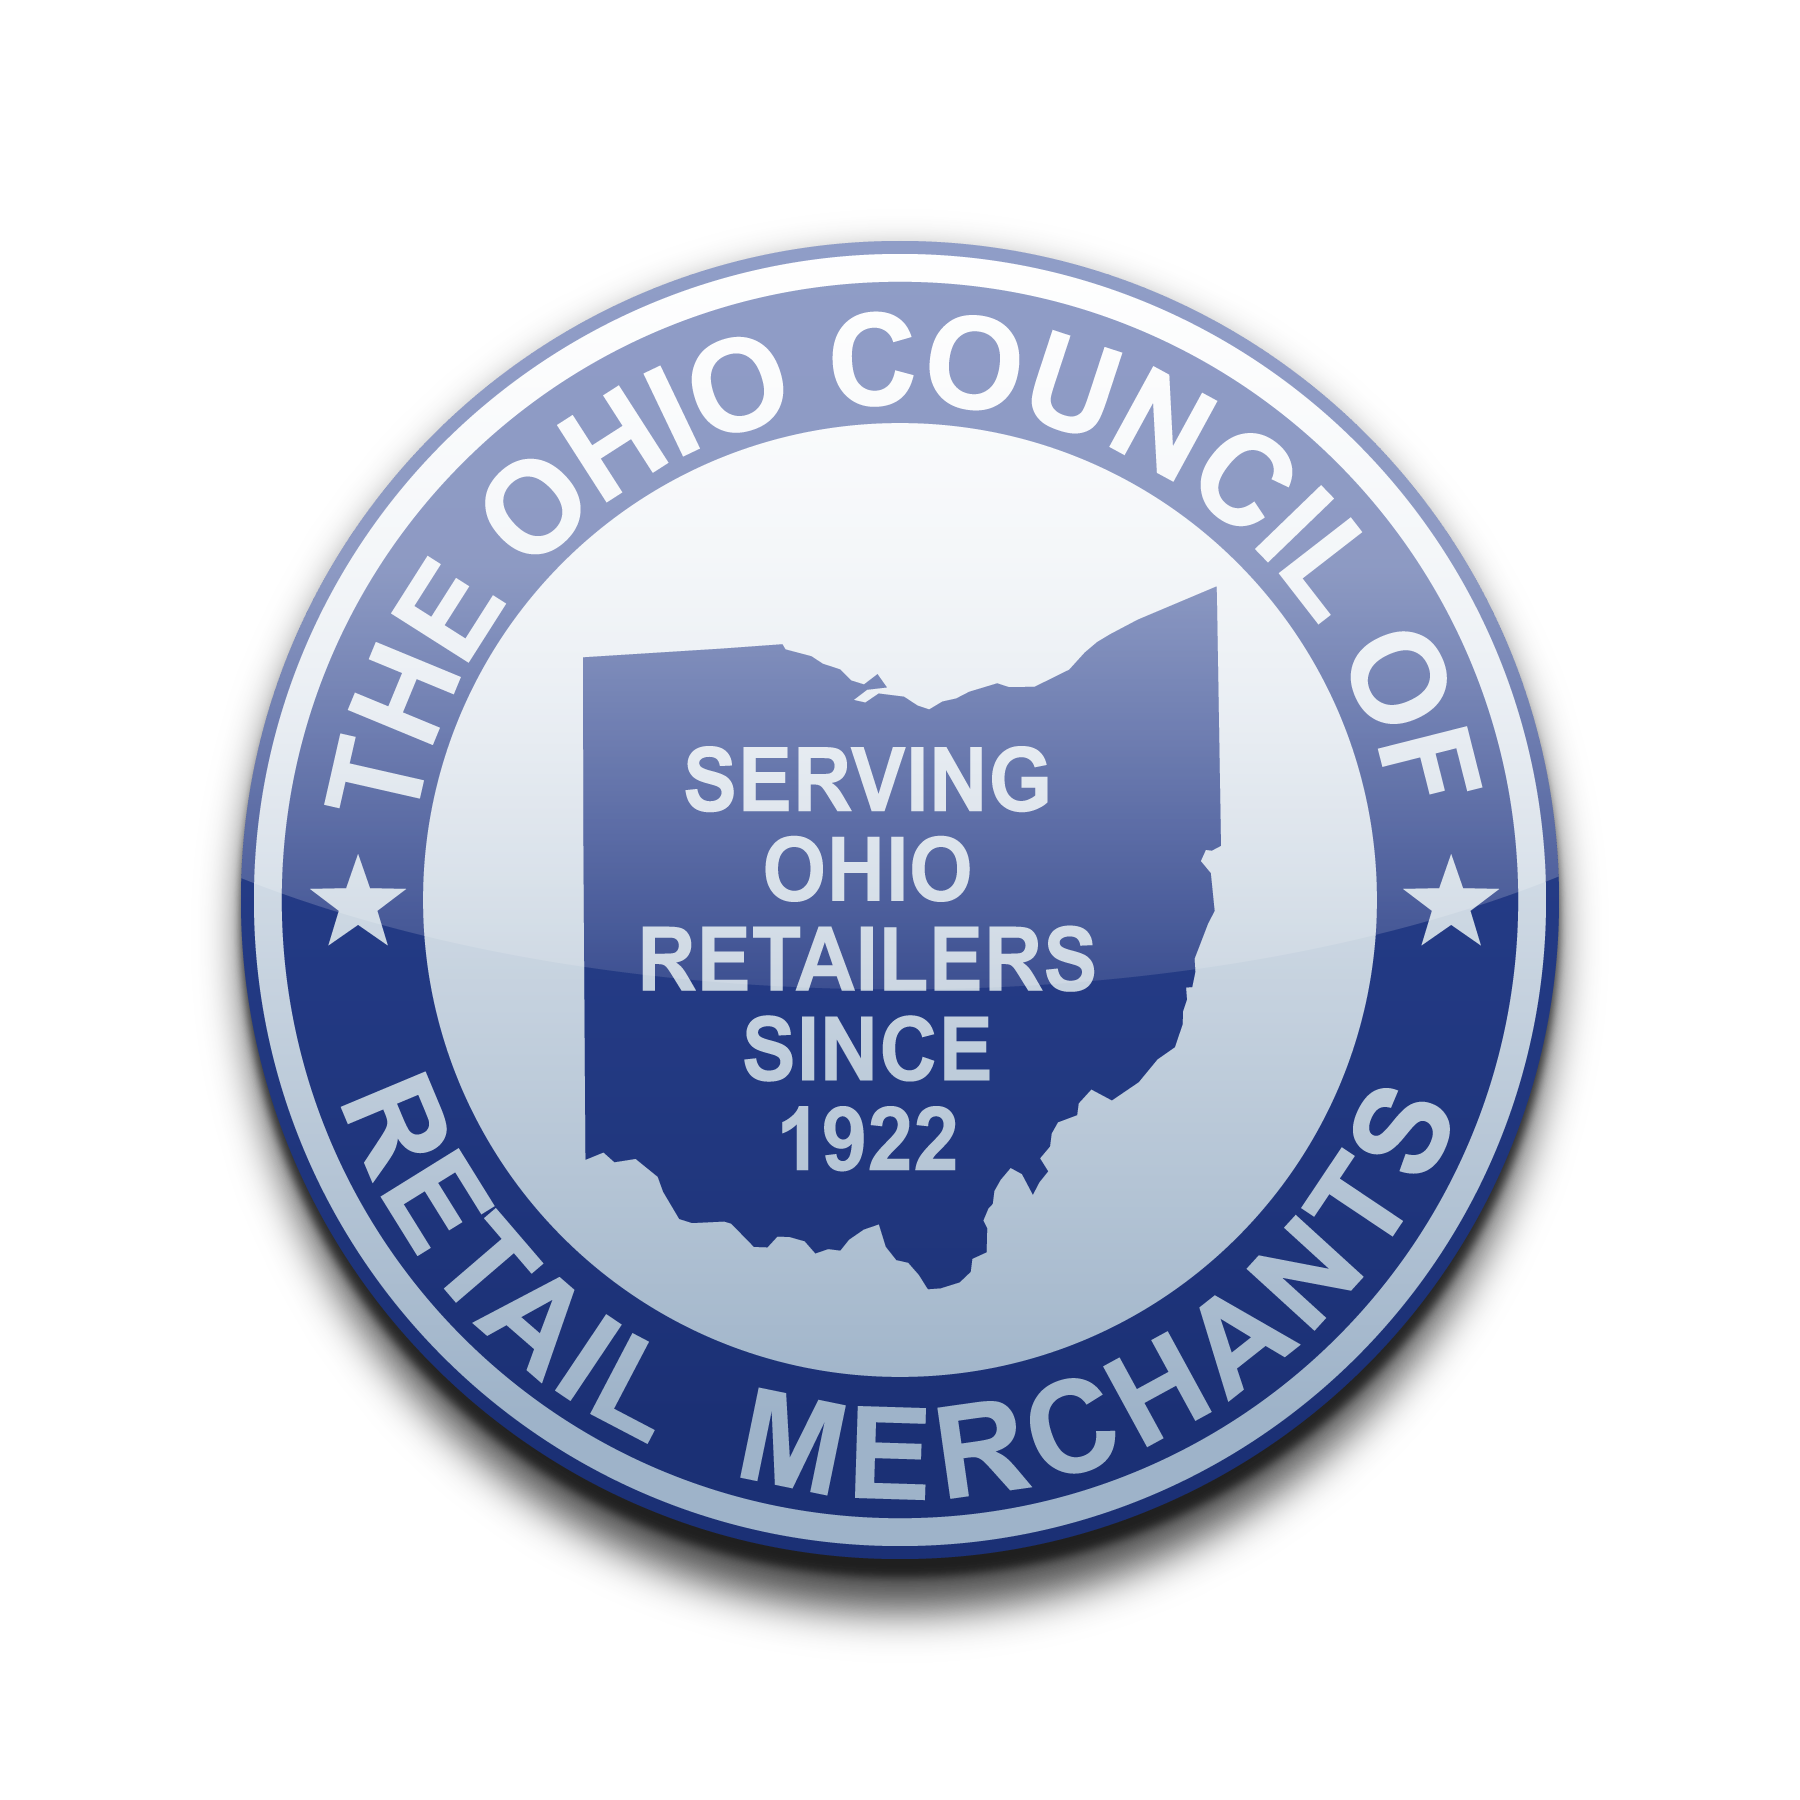 Ohio Council of Retail Merchants